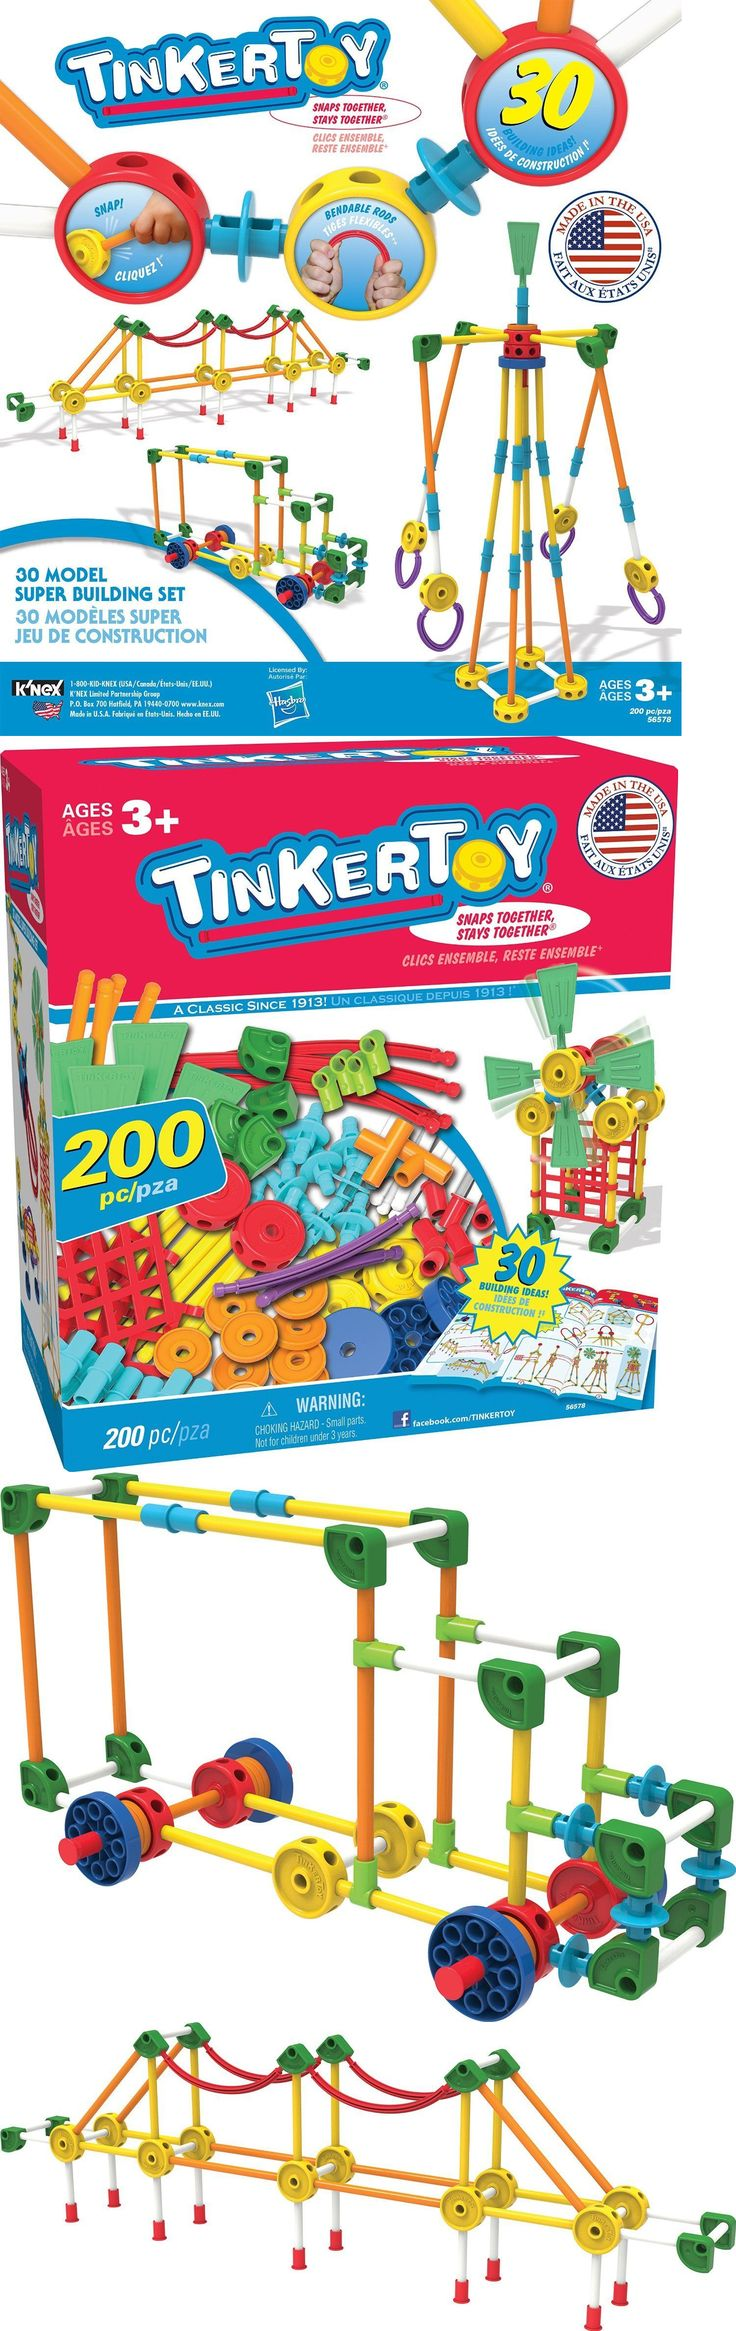 Claasic vintage toys vintage toys second shout out http www - Tinkertoy 19014 Building Toys For 5 Year Olds Boys Toddlers Girls Tinker Toys Sets Plastic